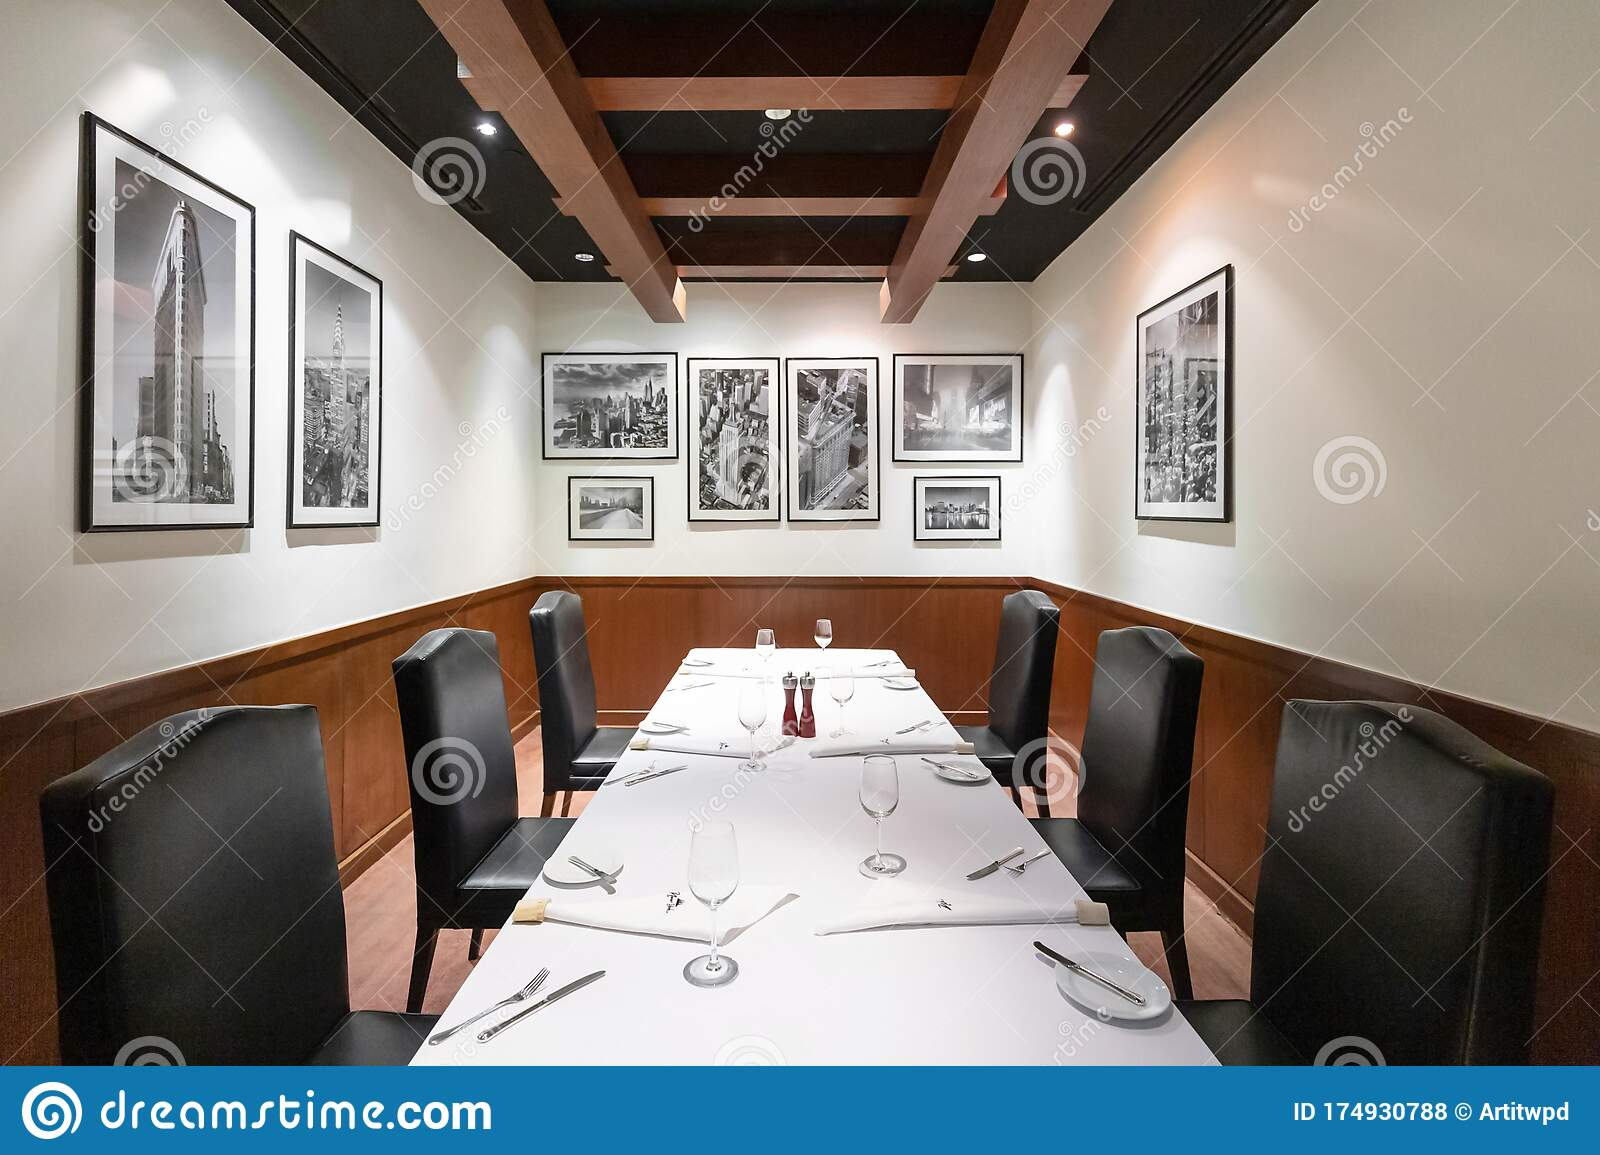 Steak House Restaurant Interior Design With Contemporary Luxury Furniture In New York Style Elegant Black Leather Chairs Editorial Stock Photo Image Of Club Furniture 174930788